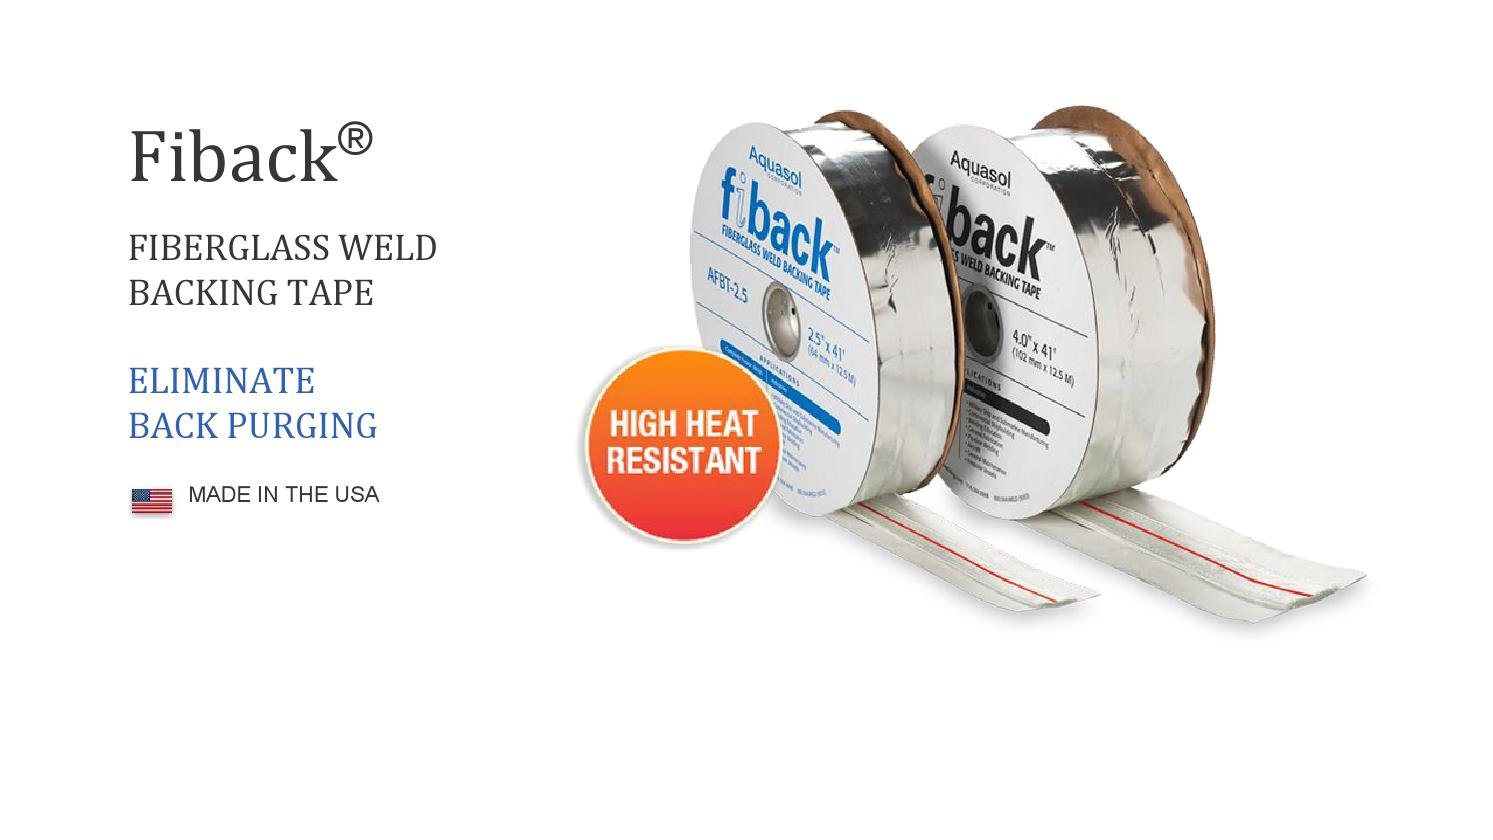 Aquasol AFBT-2.5-200 Fiback Weld Backing Tape 200 AMP 82 Length 2.5 Wide 1.125 Fiberglass Center Strip Width 82/' Length 2.5 Wide 1.125 Fiberglass Center Strip Width